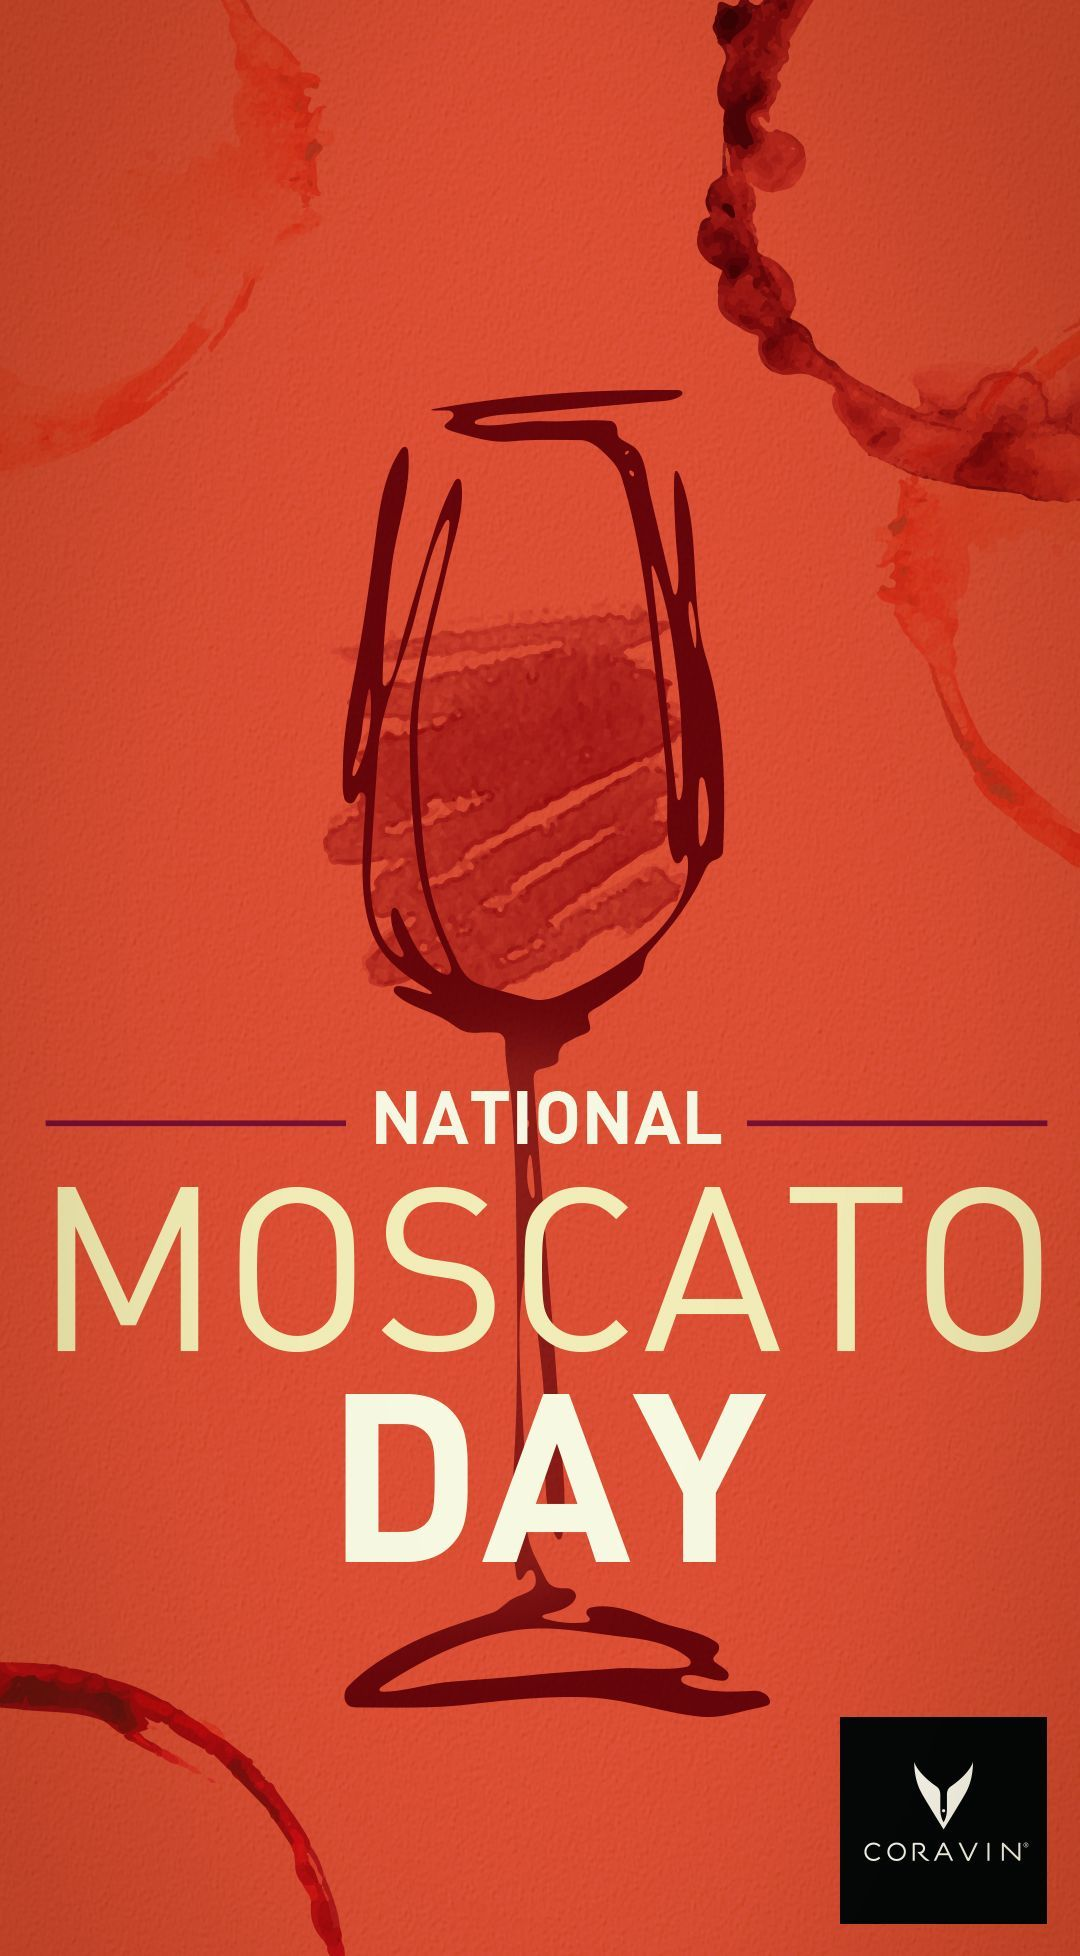 It S National Moscato Day Here S An Early Tbt Blog Post All About This Sweet White Wine From Italy S Piedmont Region Coravin Sweet White Wine Wine